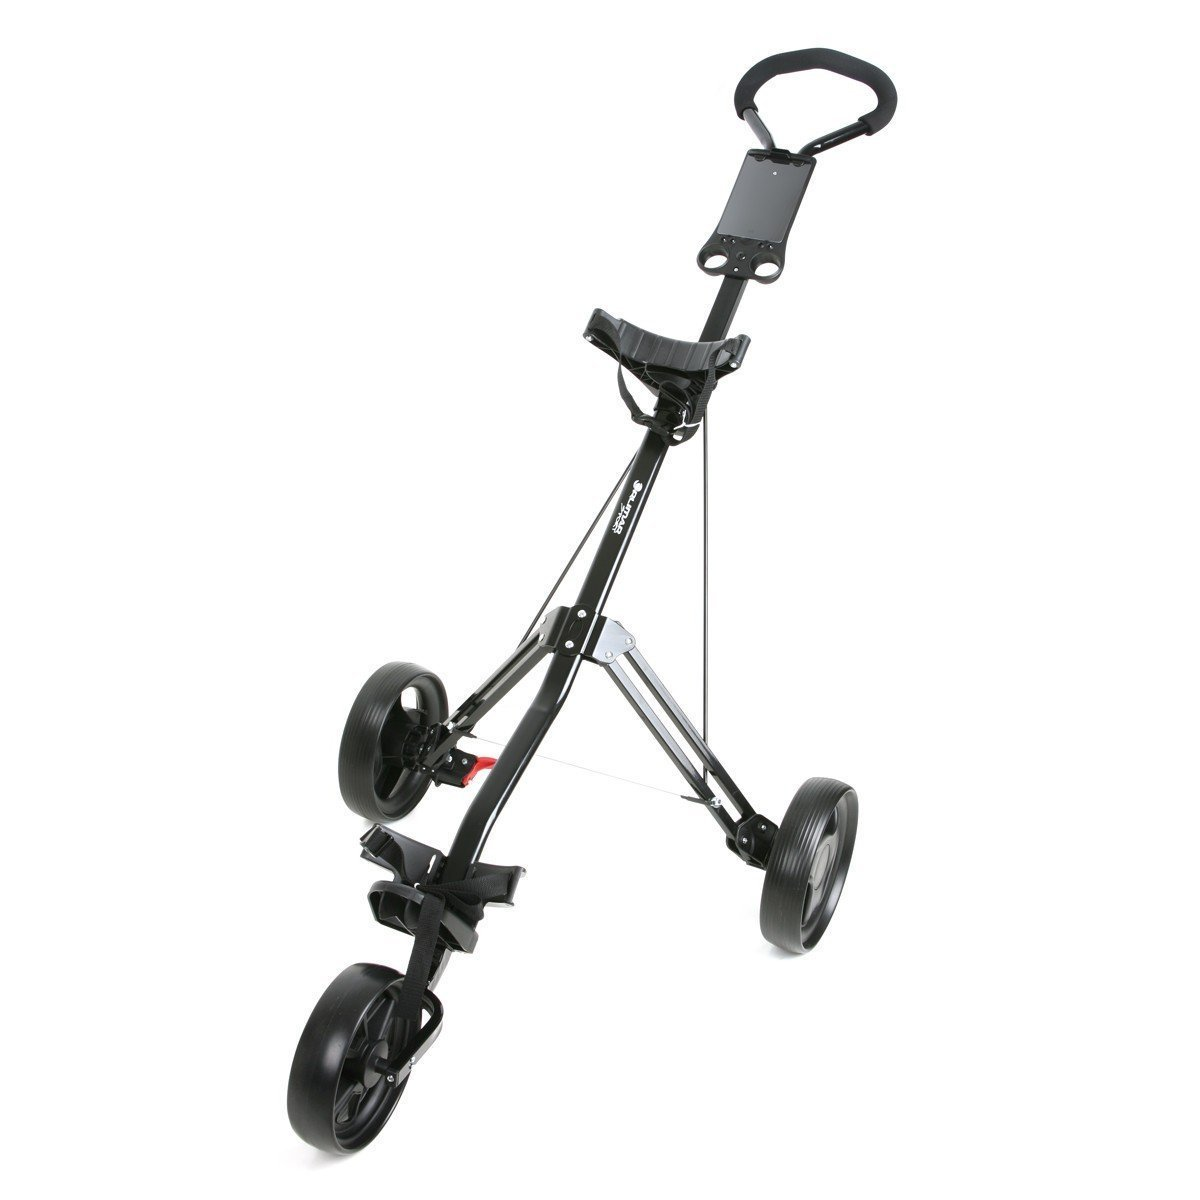 Orlimar Trakker 3 Wheel Golf Push Carts